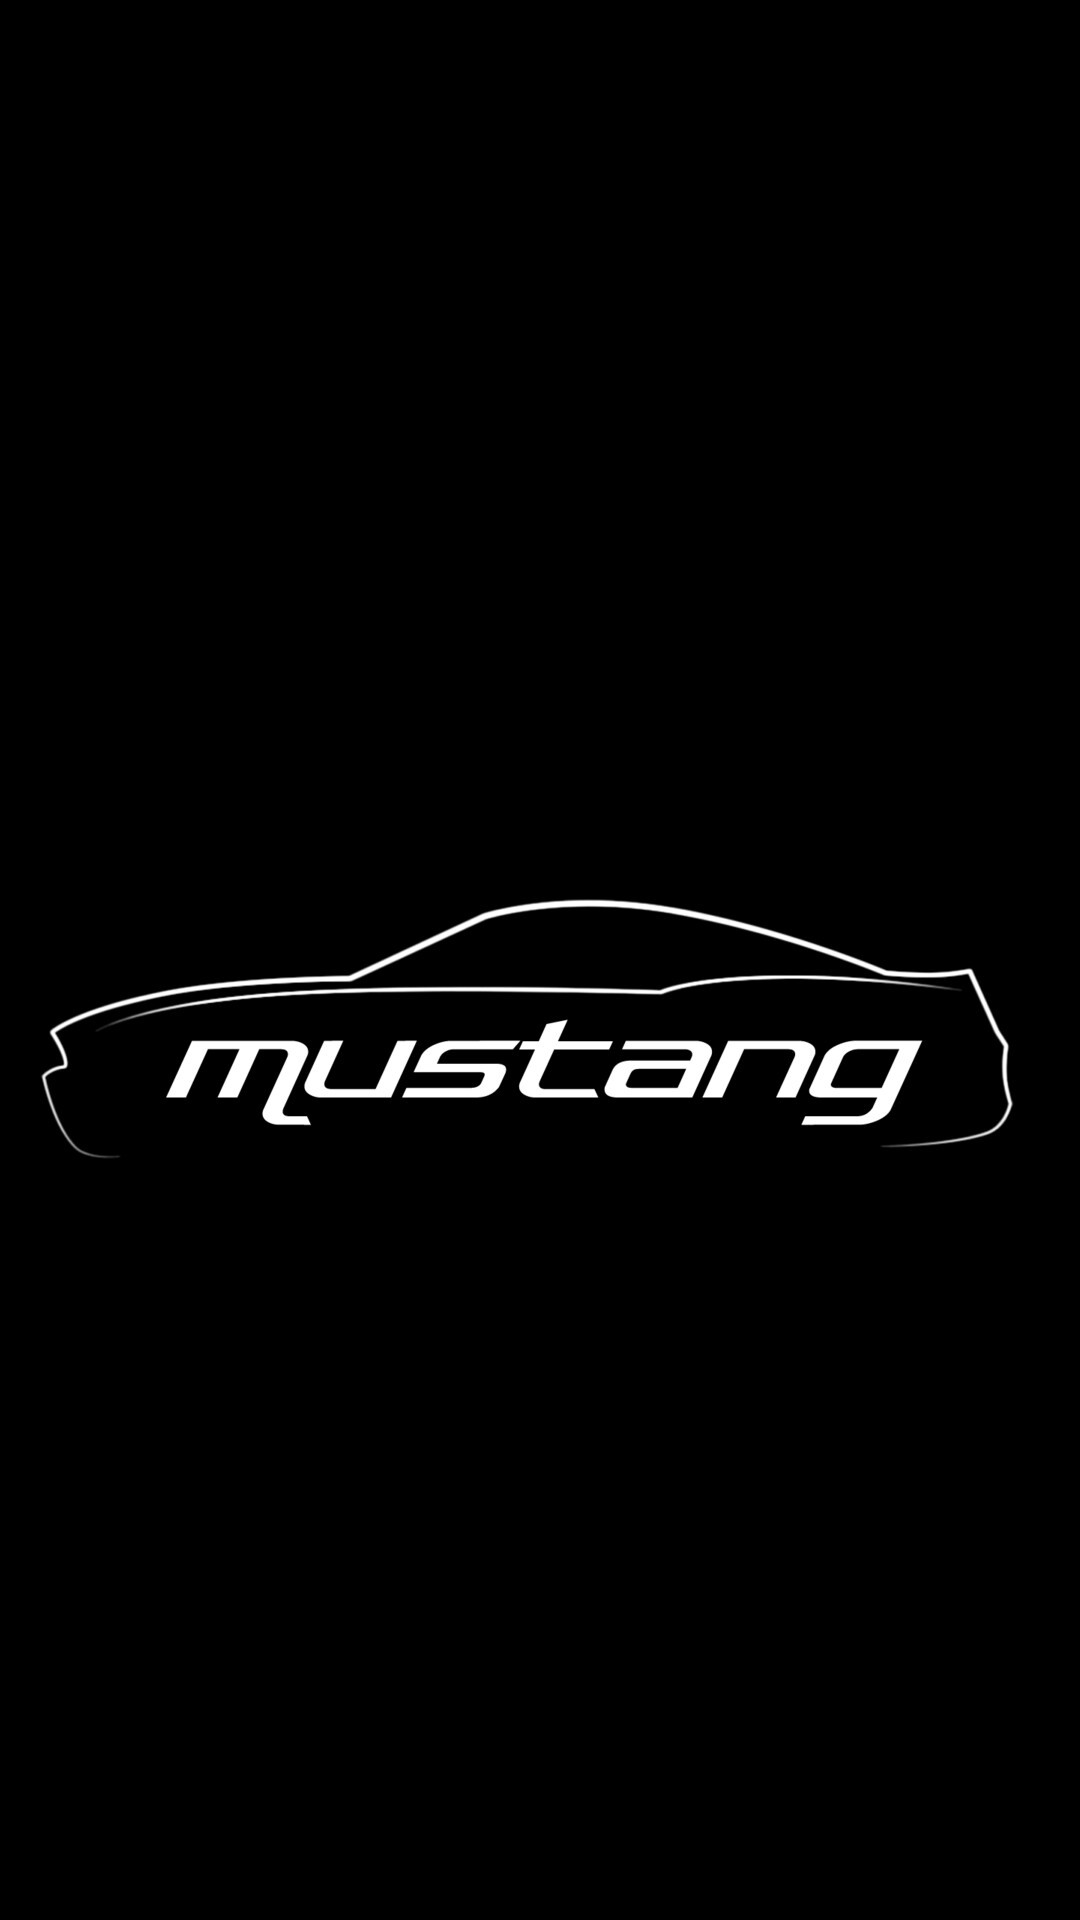 2602x1998 Cobra Mustang Logo Clipart A Wallpapers Gallery